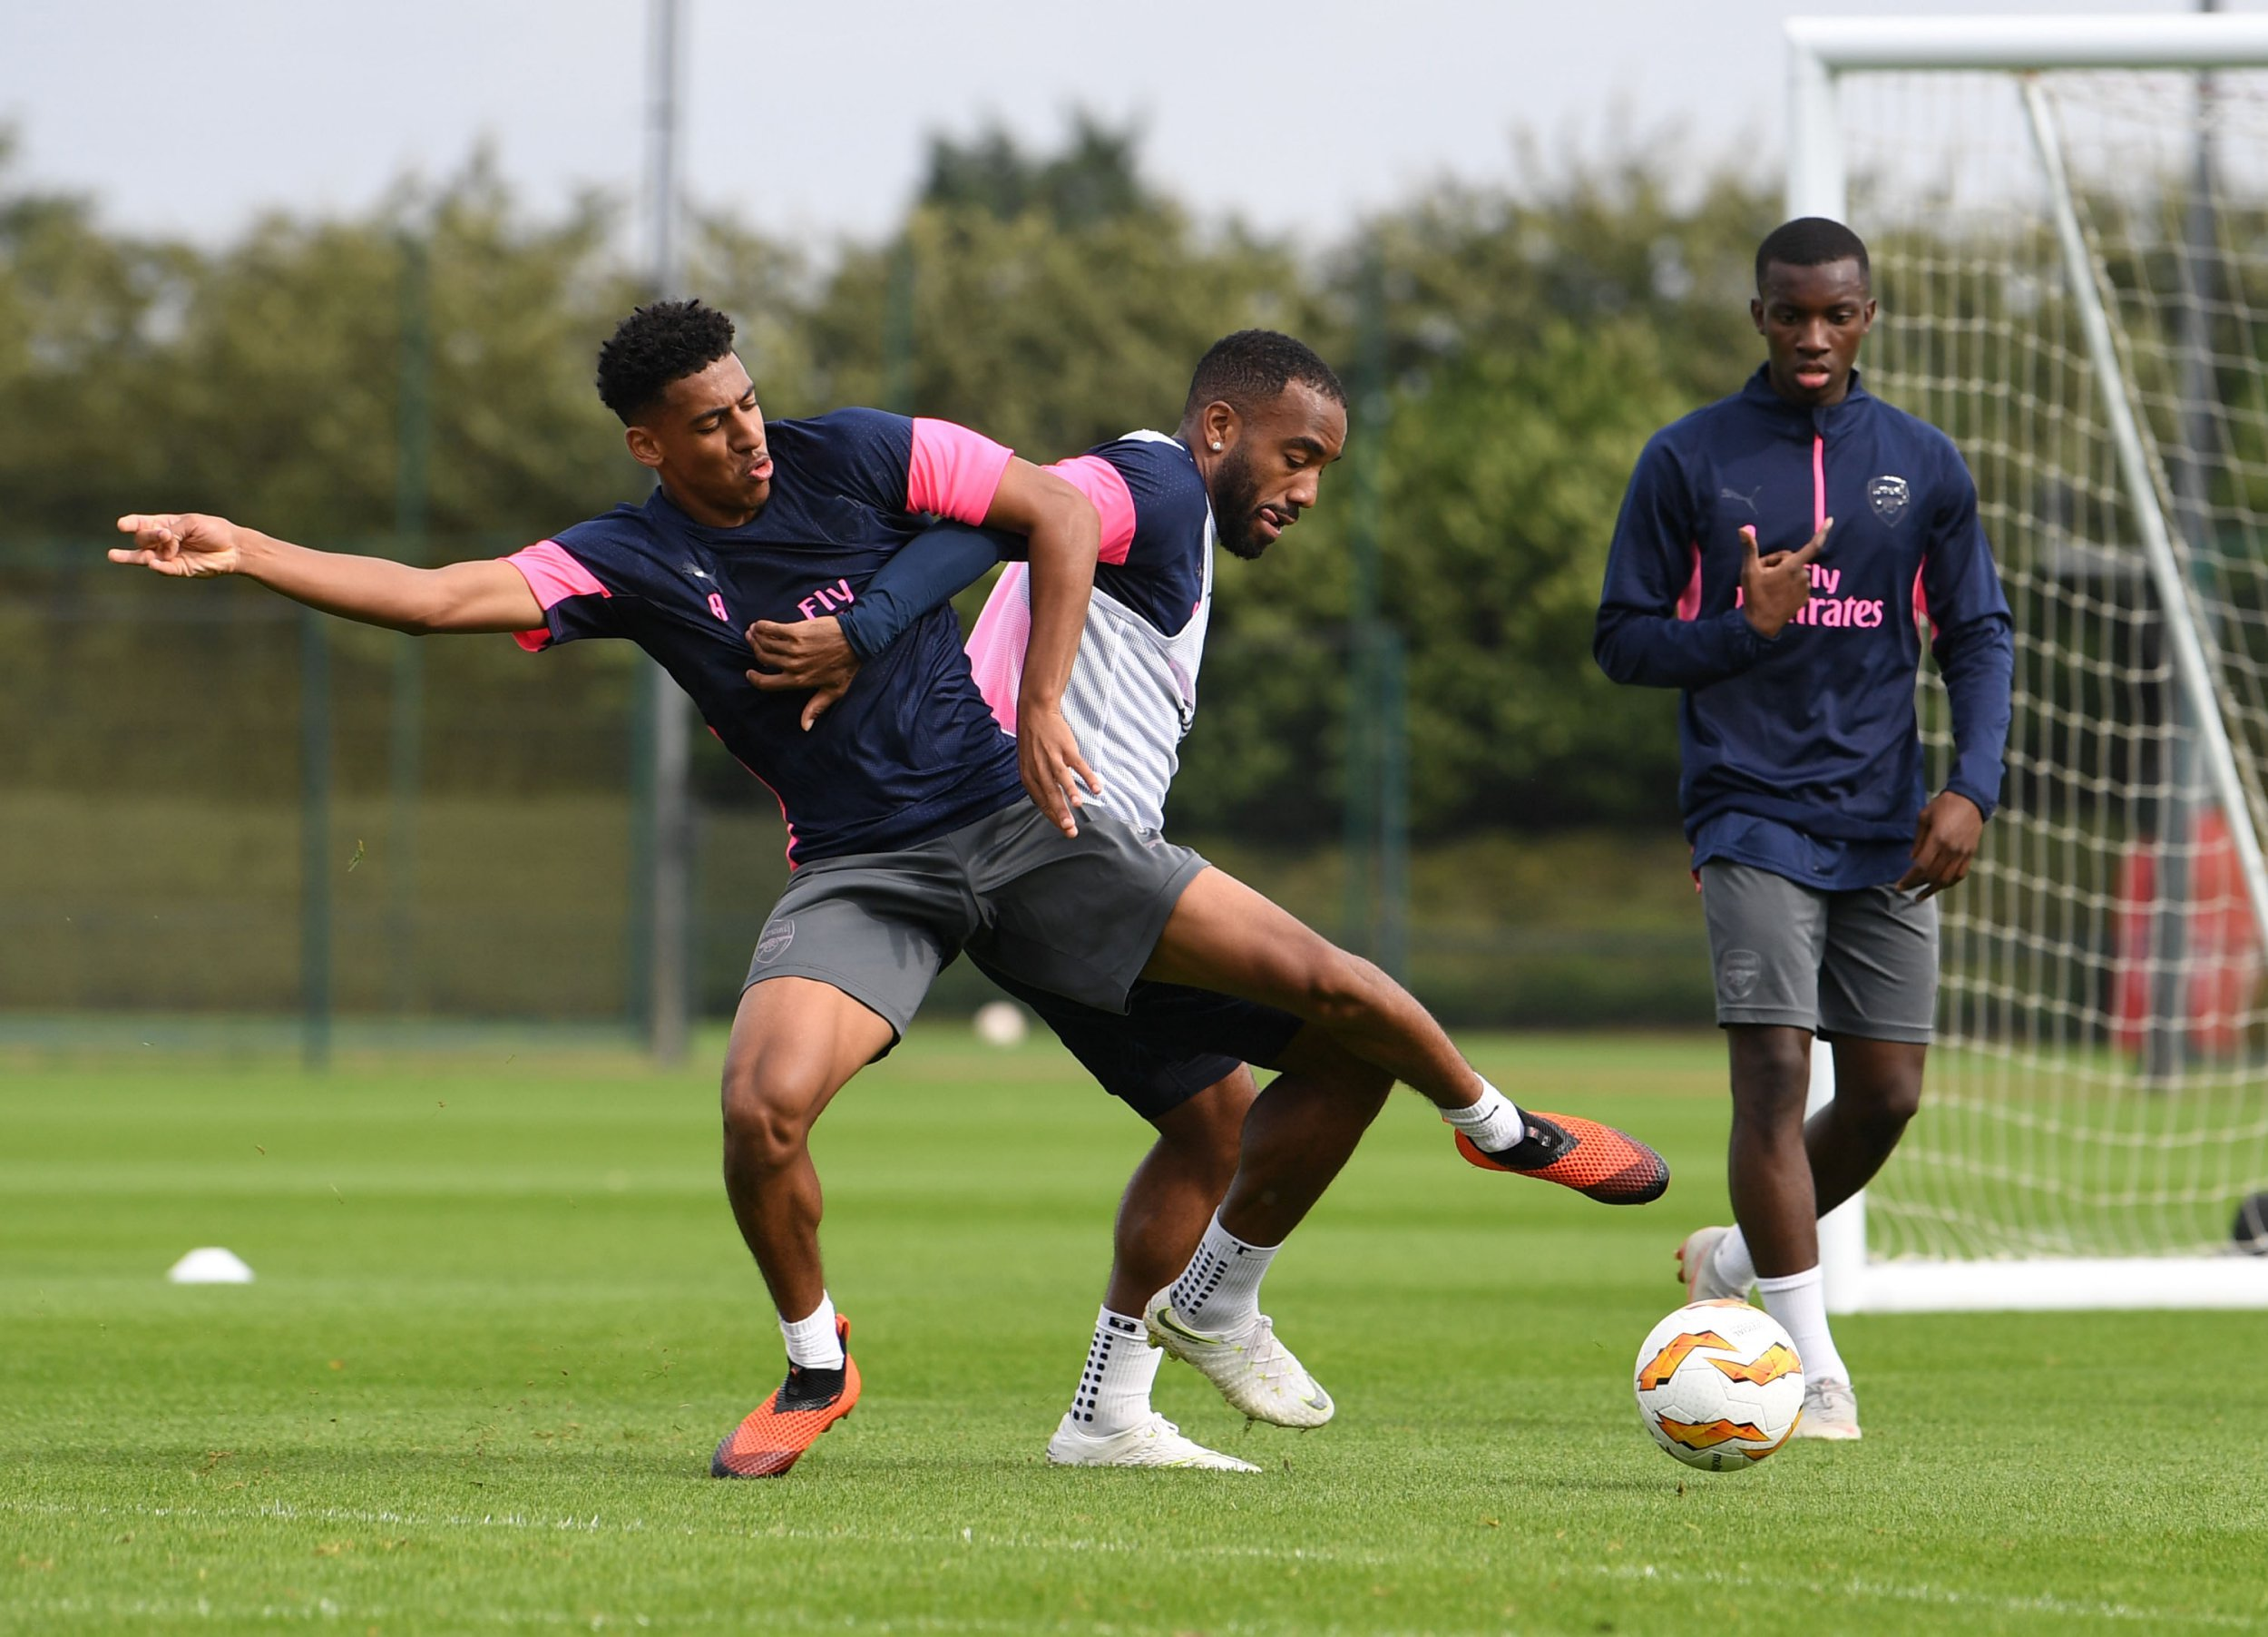 ST ALBANS, ENGLAND - SEPTEMBER 19: (L-R) Domonic Thompson and Alex Lacazette of Arsenal during a training session at London Colney on September 19, 2018 in St Albans, England. (Photo by Stuart MacFarlane/Arsenal FC via Getty Images)